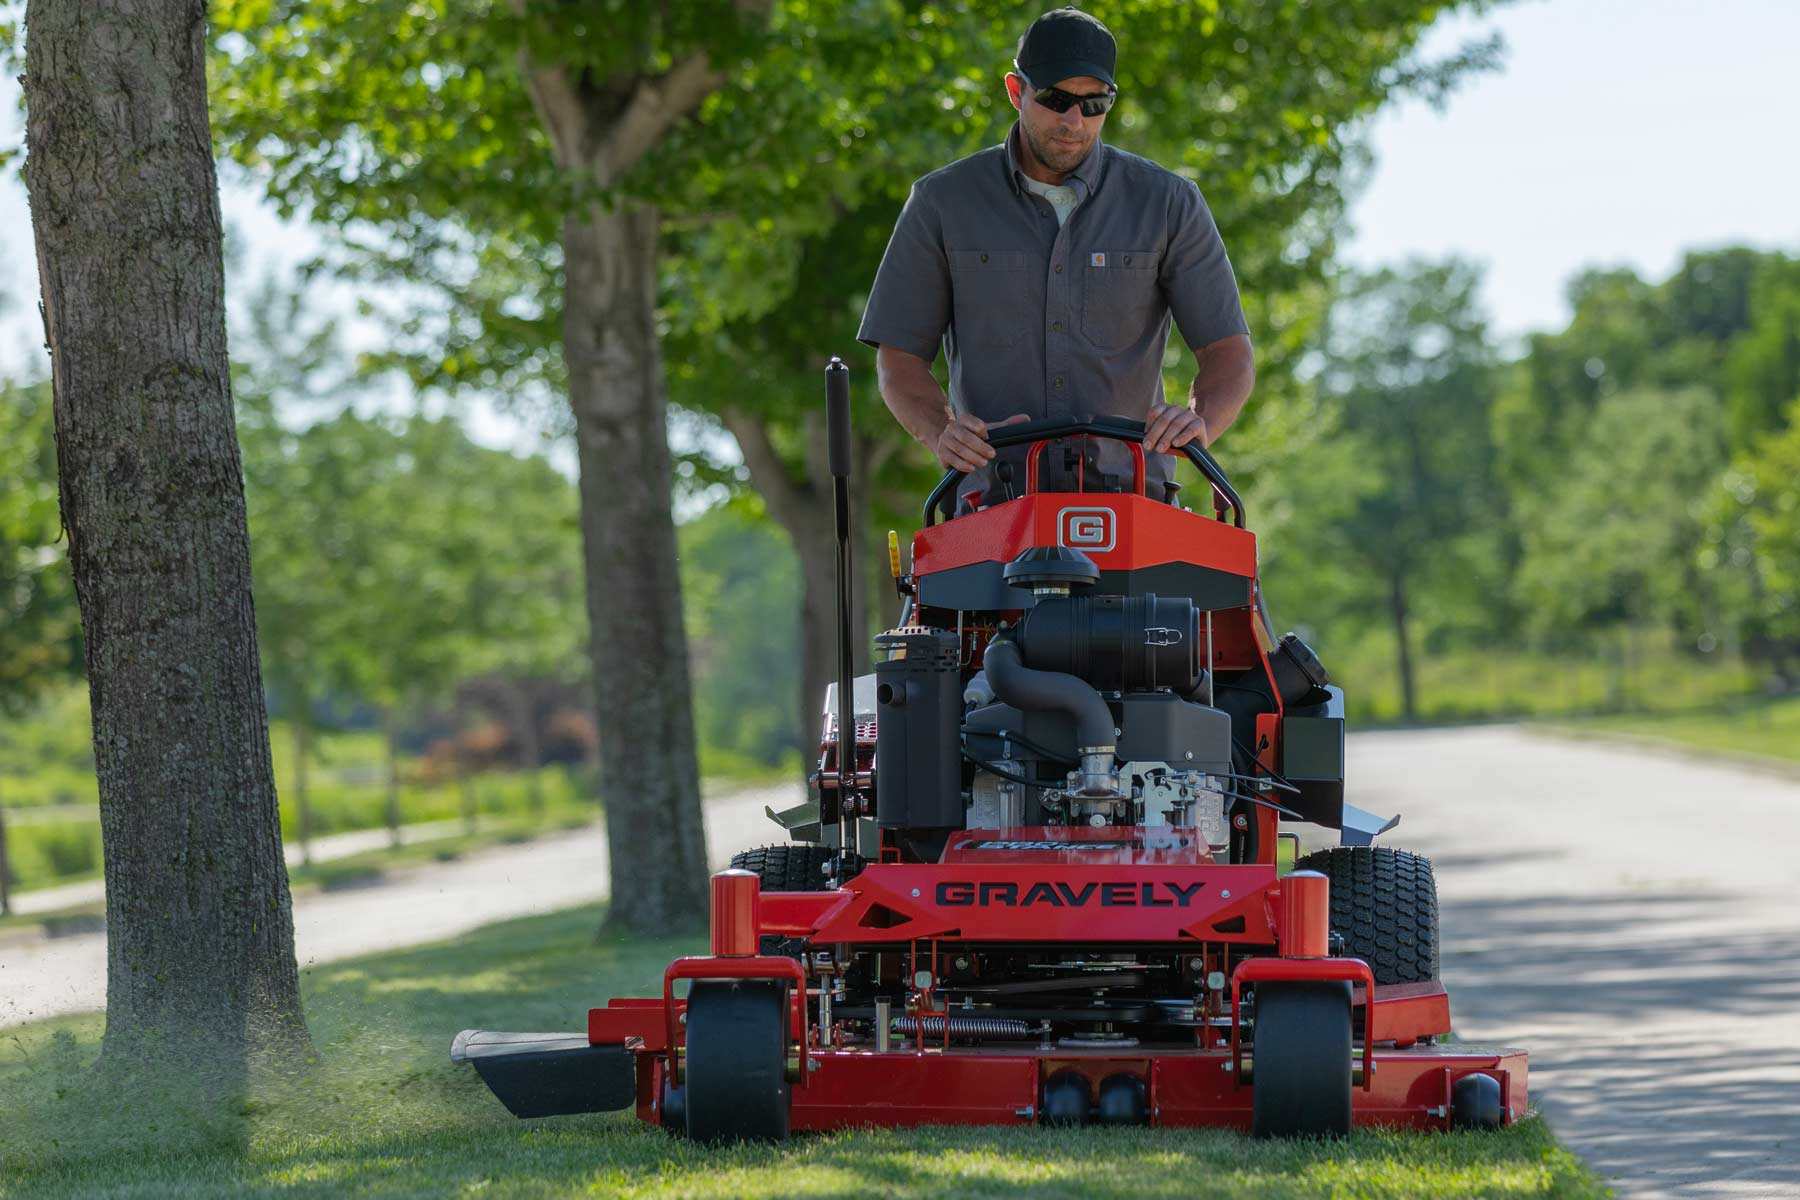 Preparing Your Lawn Mower for Spring